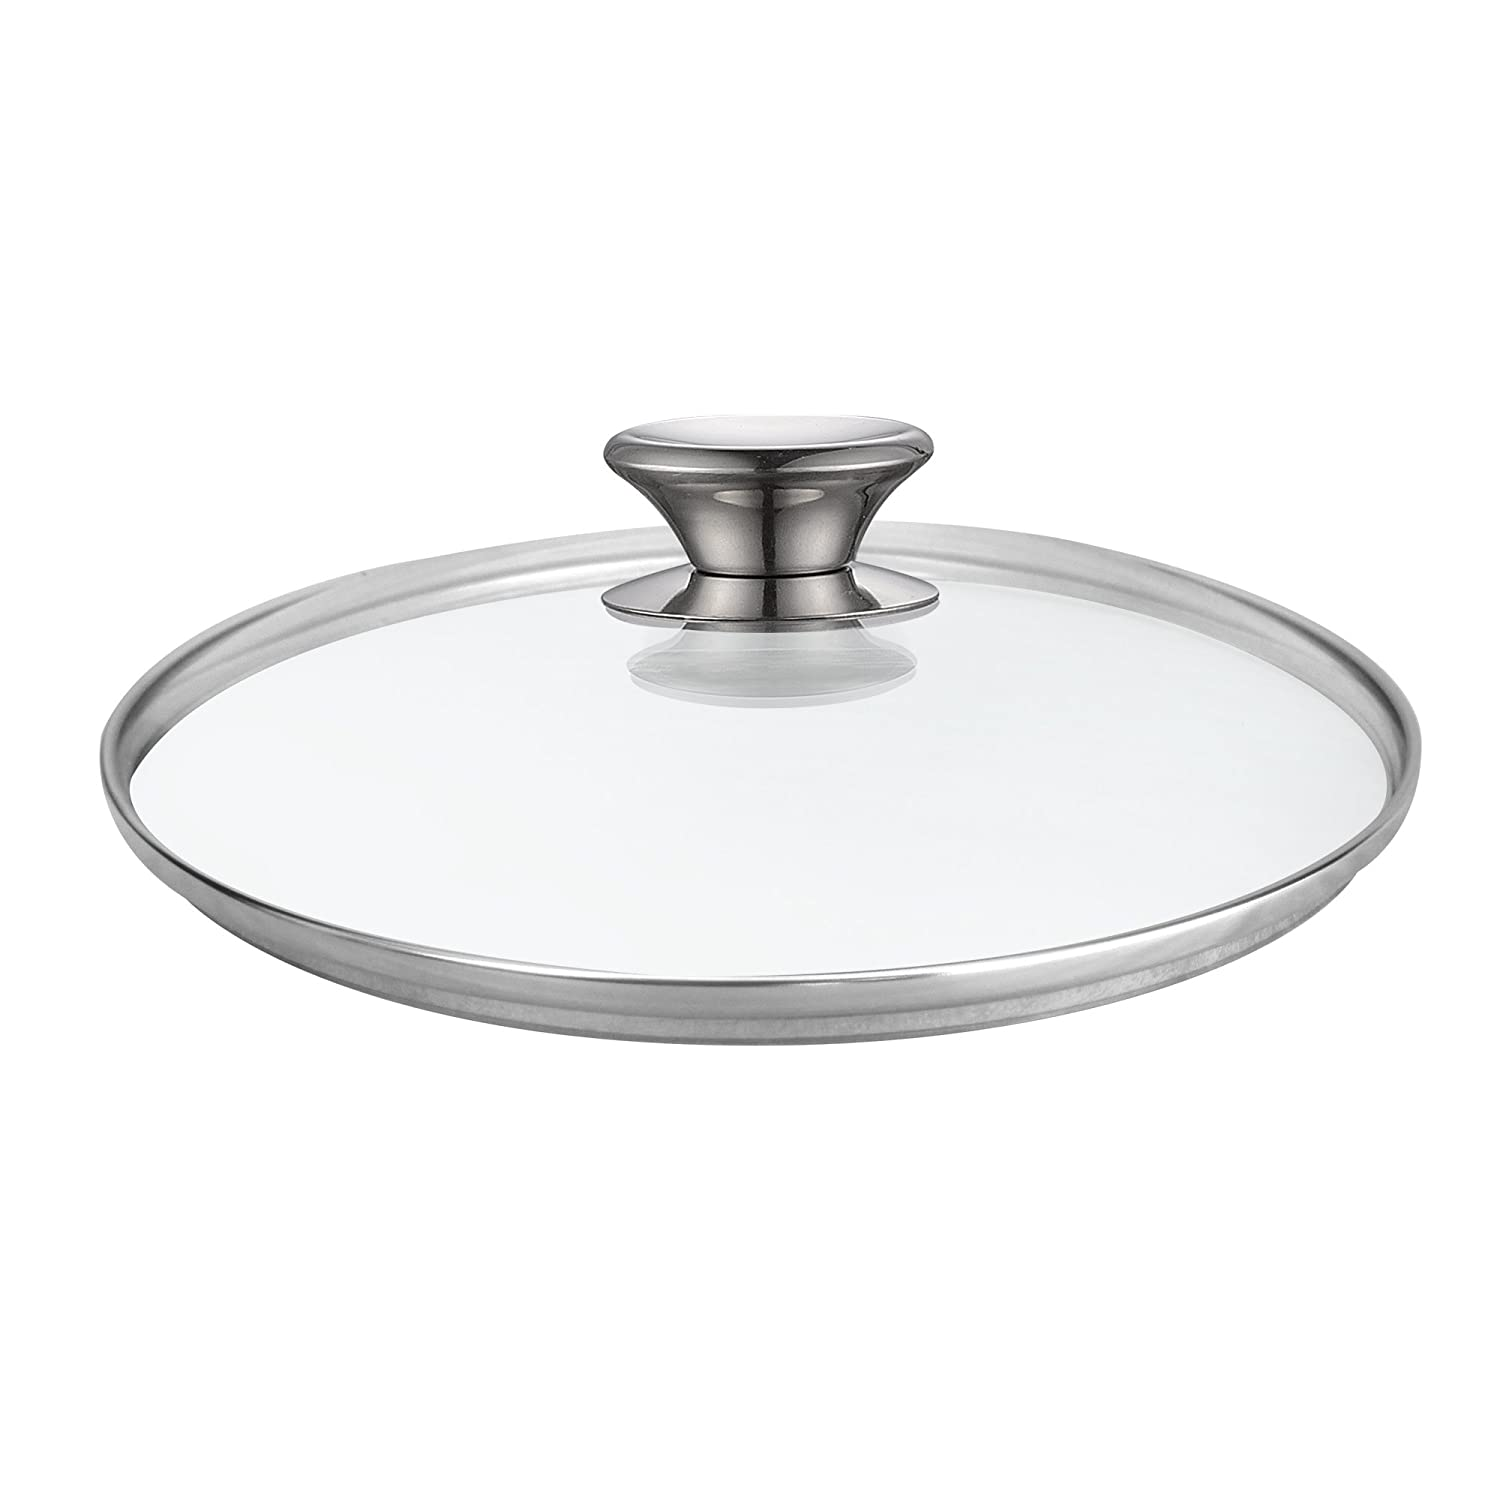 Cook N Home 02592 Tempered Glass Lid Cover with Vent, Metal Handle 8-Inch, 8-inch/20cm, Clear